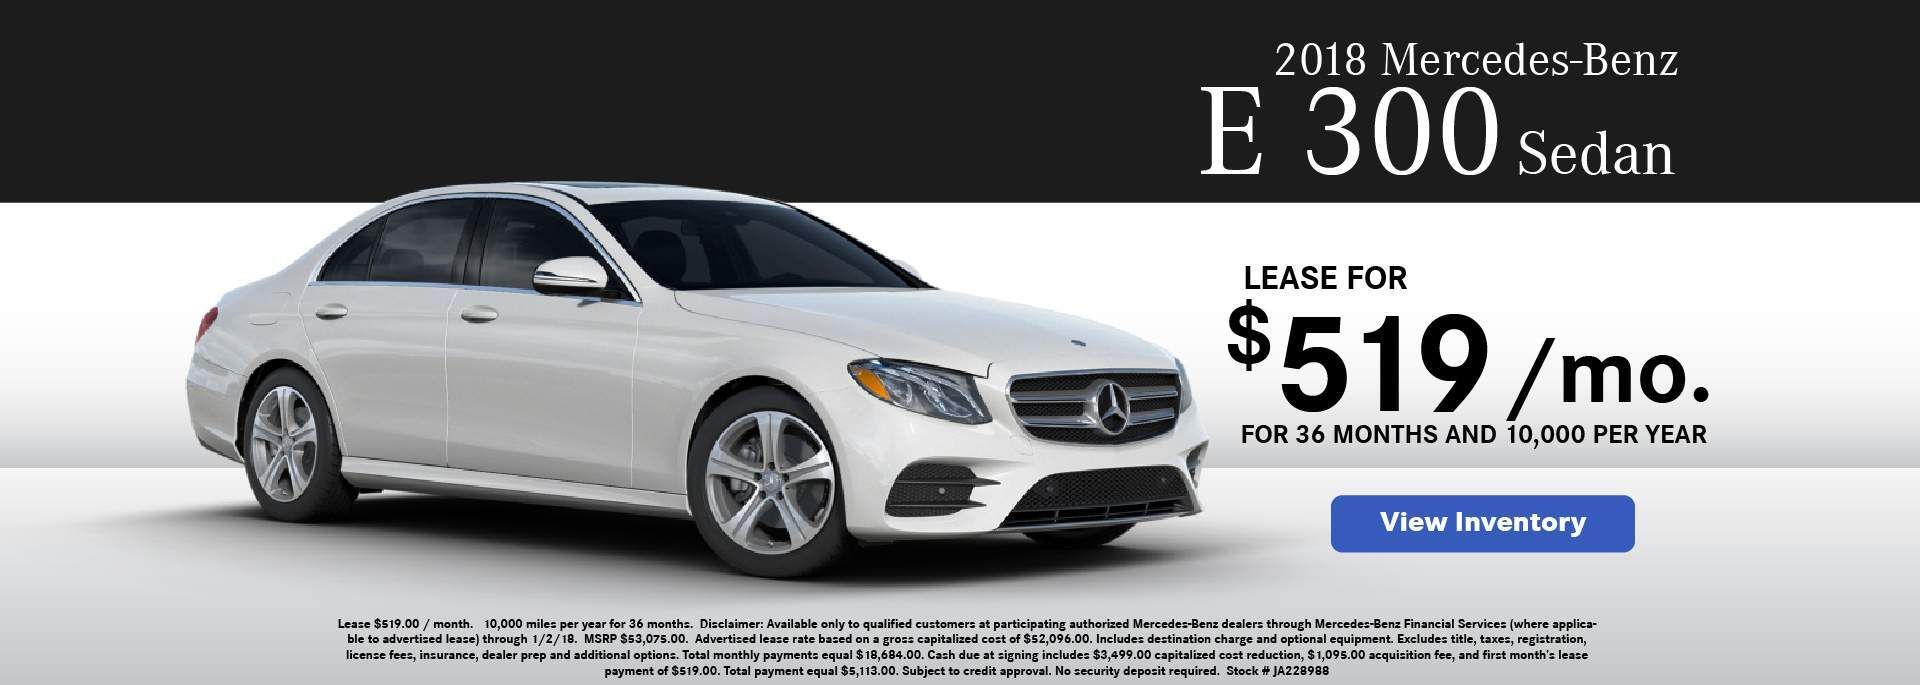 Mercedes cla lease deals miami lamoureph blog for Mercedes benz cla lease deals